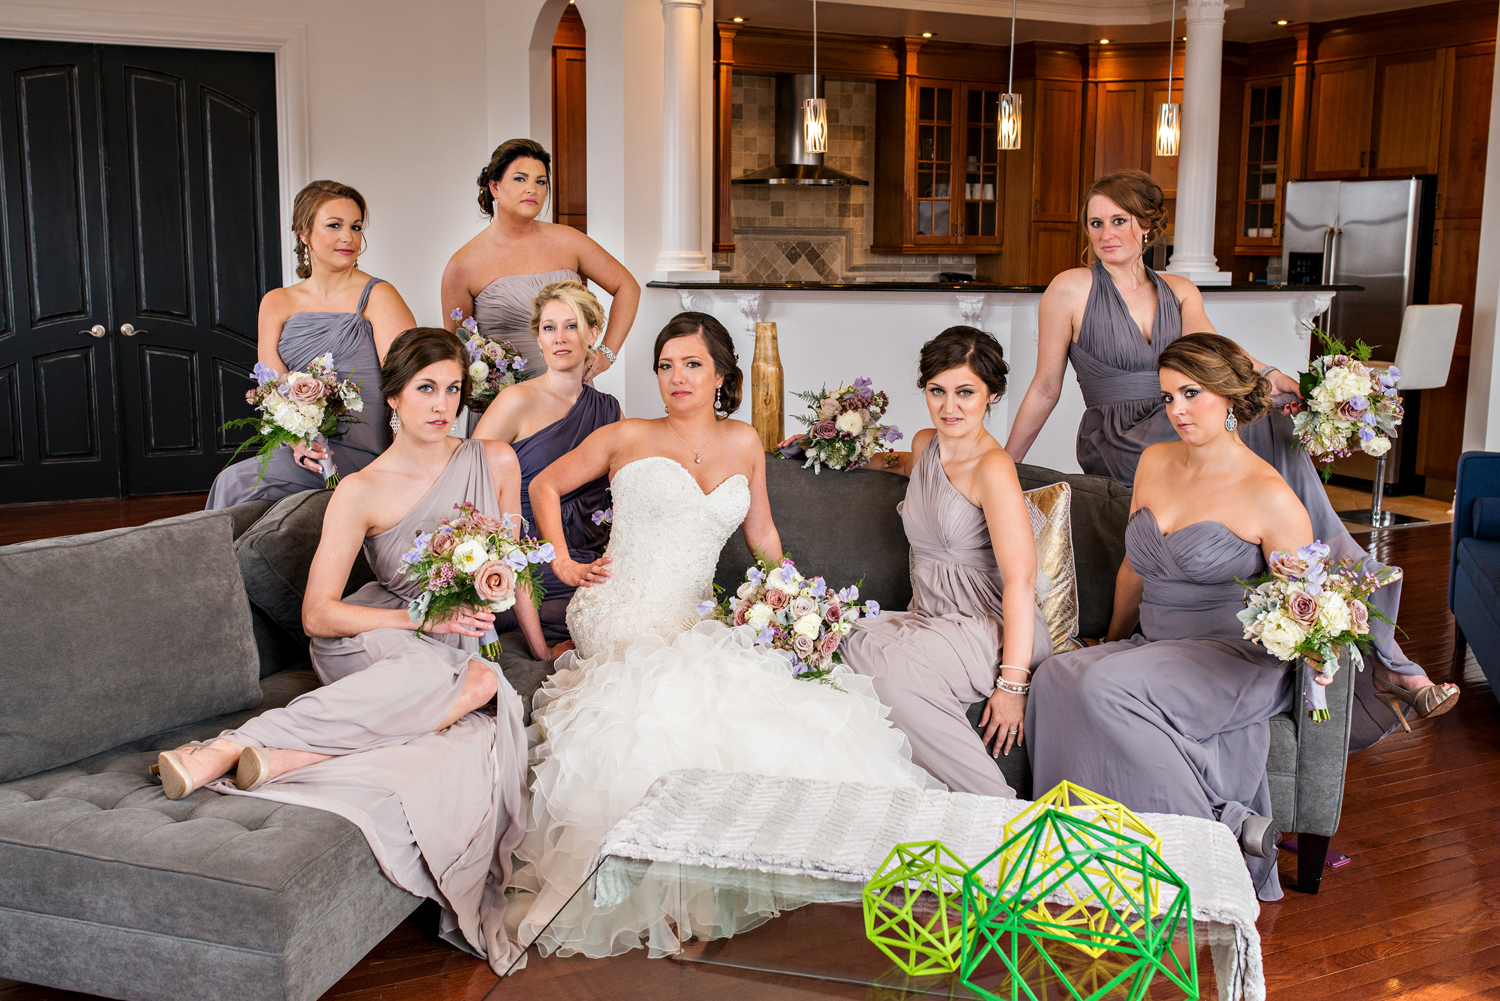 loft310_wedding_photographer_kalamazoo_wedding_photographer_400.jpg